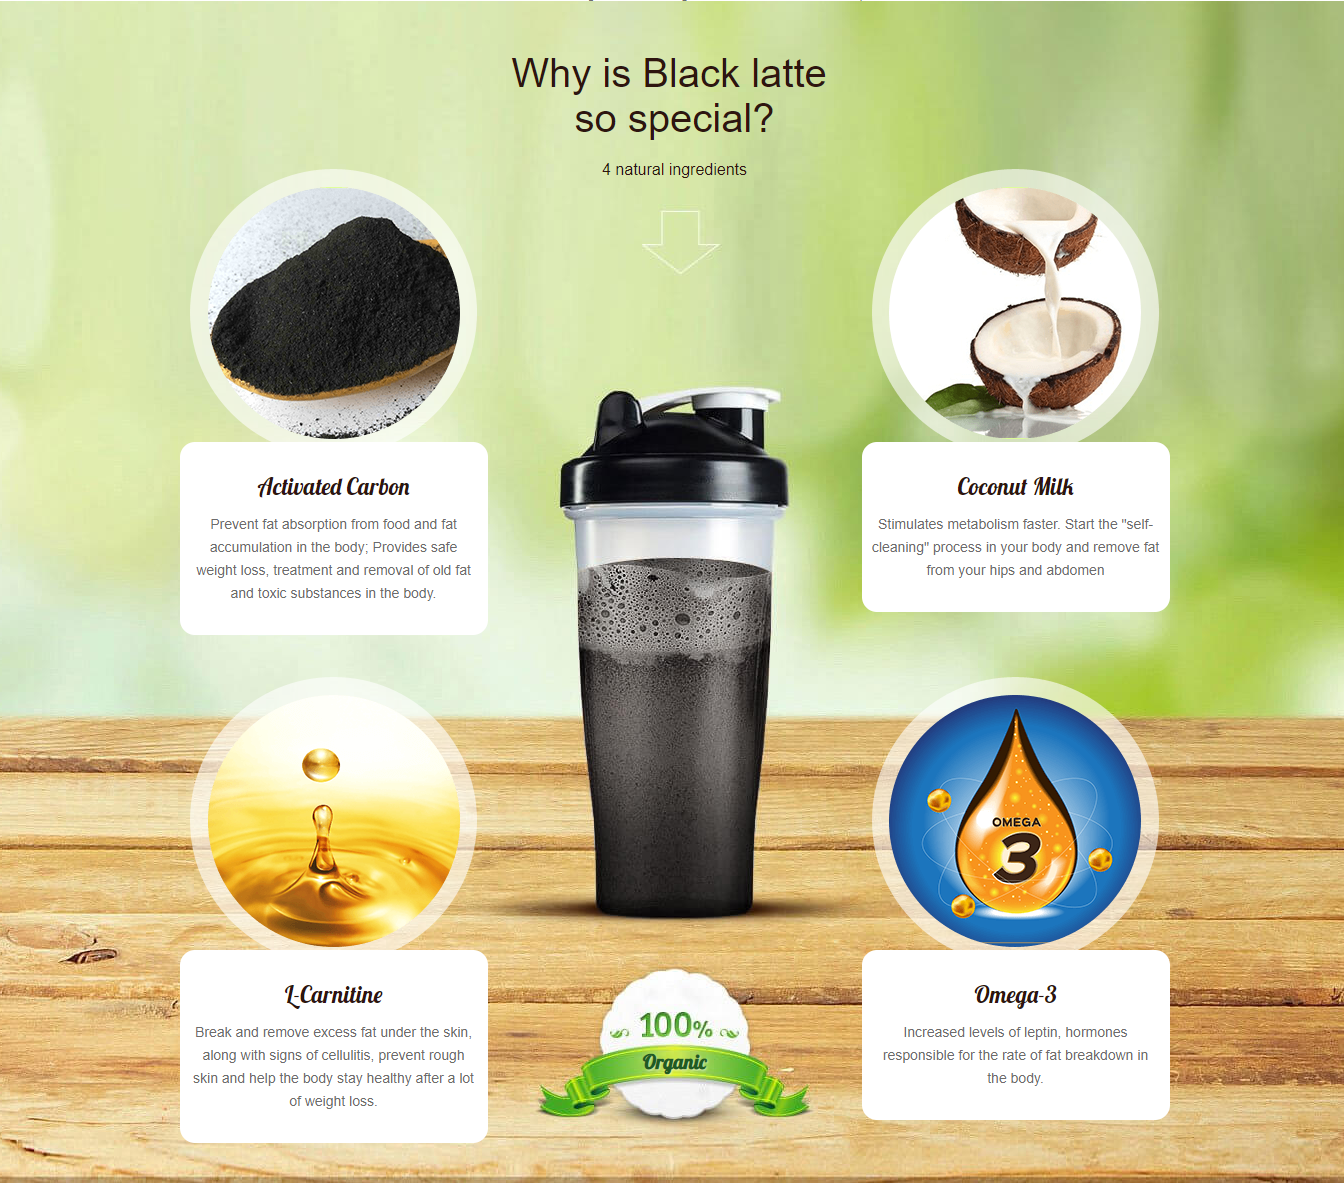 An effective and safe method of weight loss with Black Latte